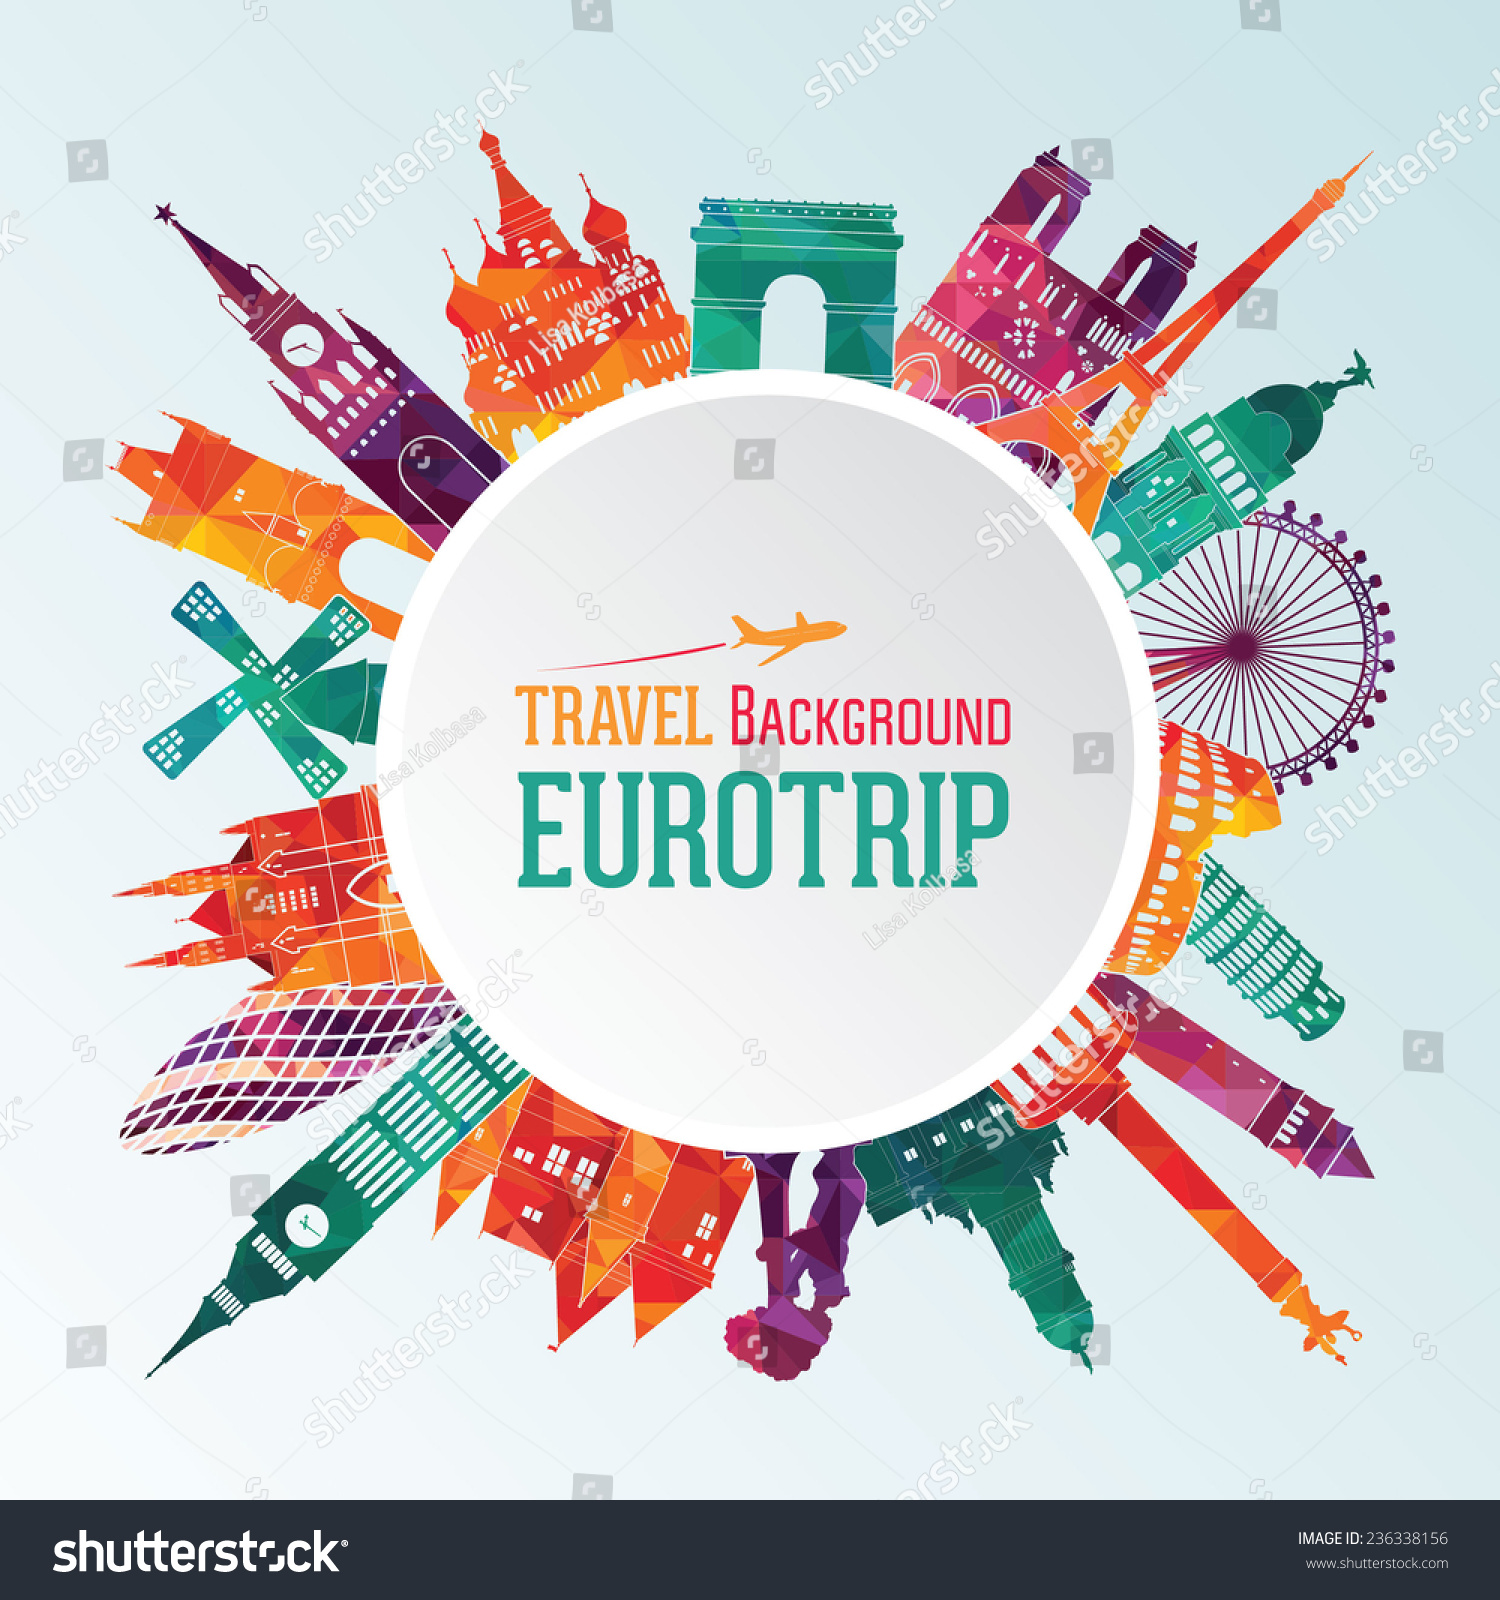 vector illustration of europe - photo #42